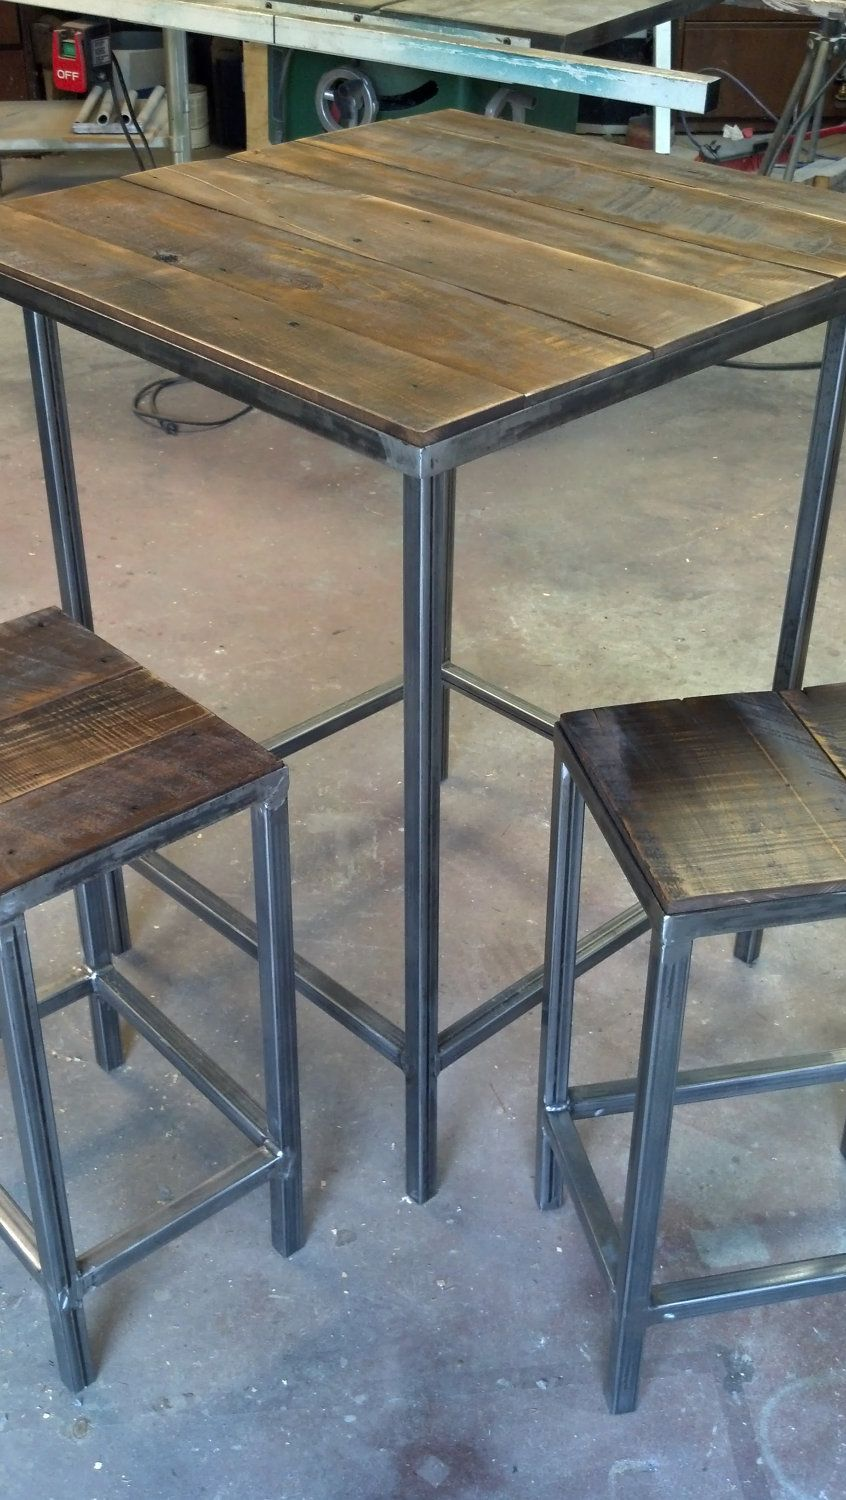 Modern Rustic Bar Set The Starter By Dbaileybuilt On Etsy 525 00 Mobilier De Salon Meuble Fer Et Bois Meuble Metal